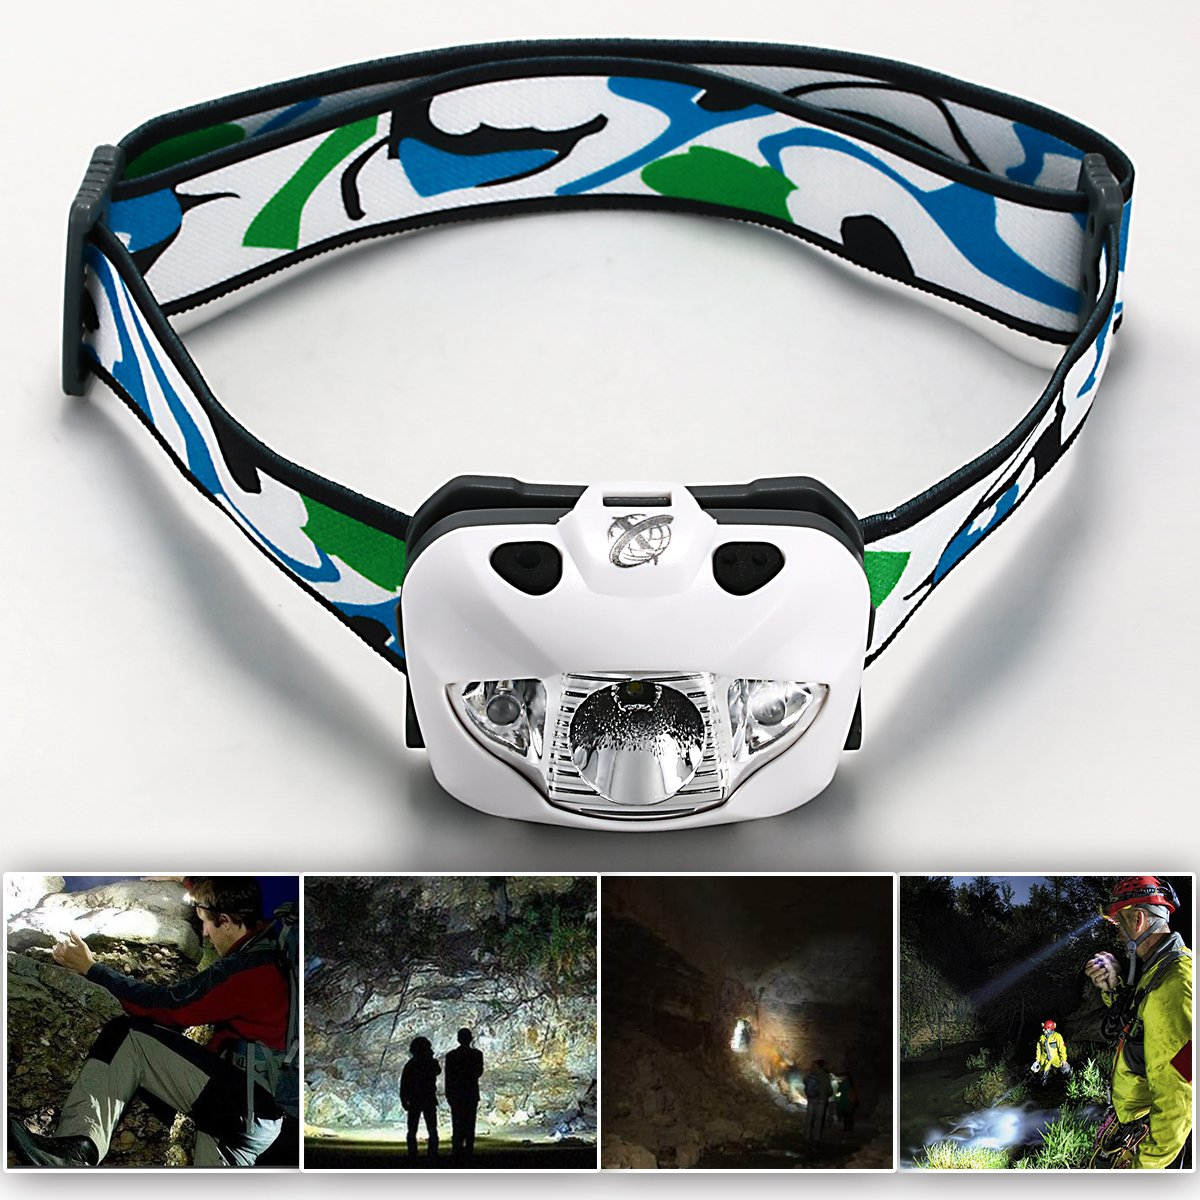 Xcellent Global Professional Compact Light Weight and High Power 160 Lumens Cree R3 White Light LED Headlamp - Red, White, Flashing and Dimmable Modes perfect for Night Running, Hunting, Reading, Hiking, Fishing, Camping, Jogging, Walking. Splash Proof Dur